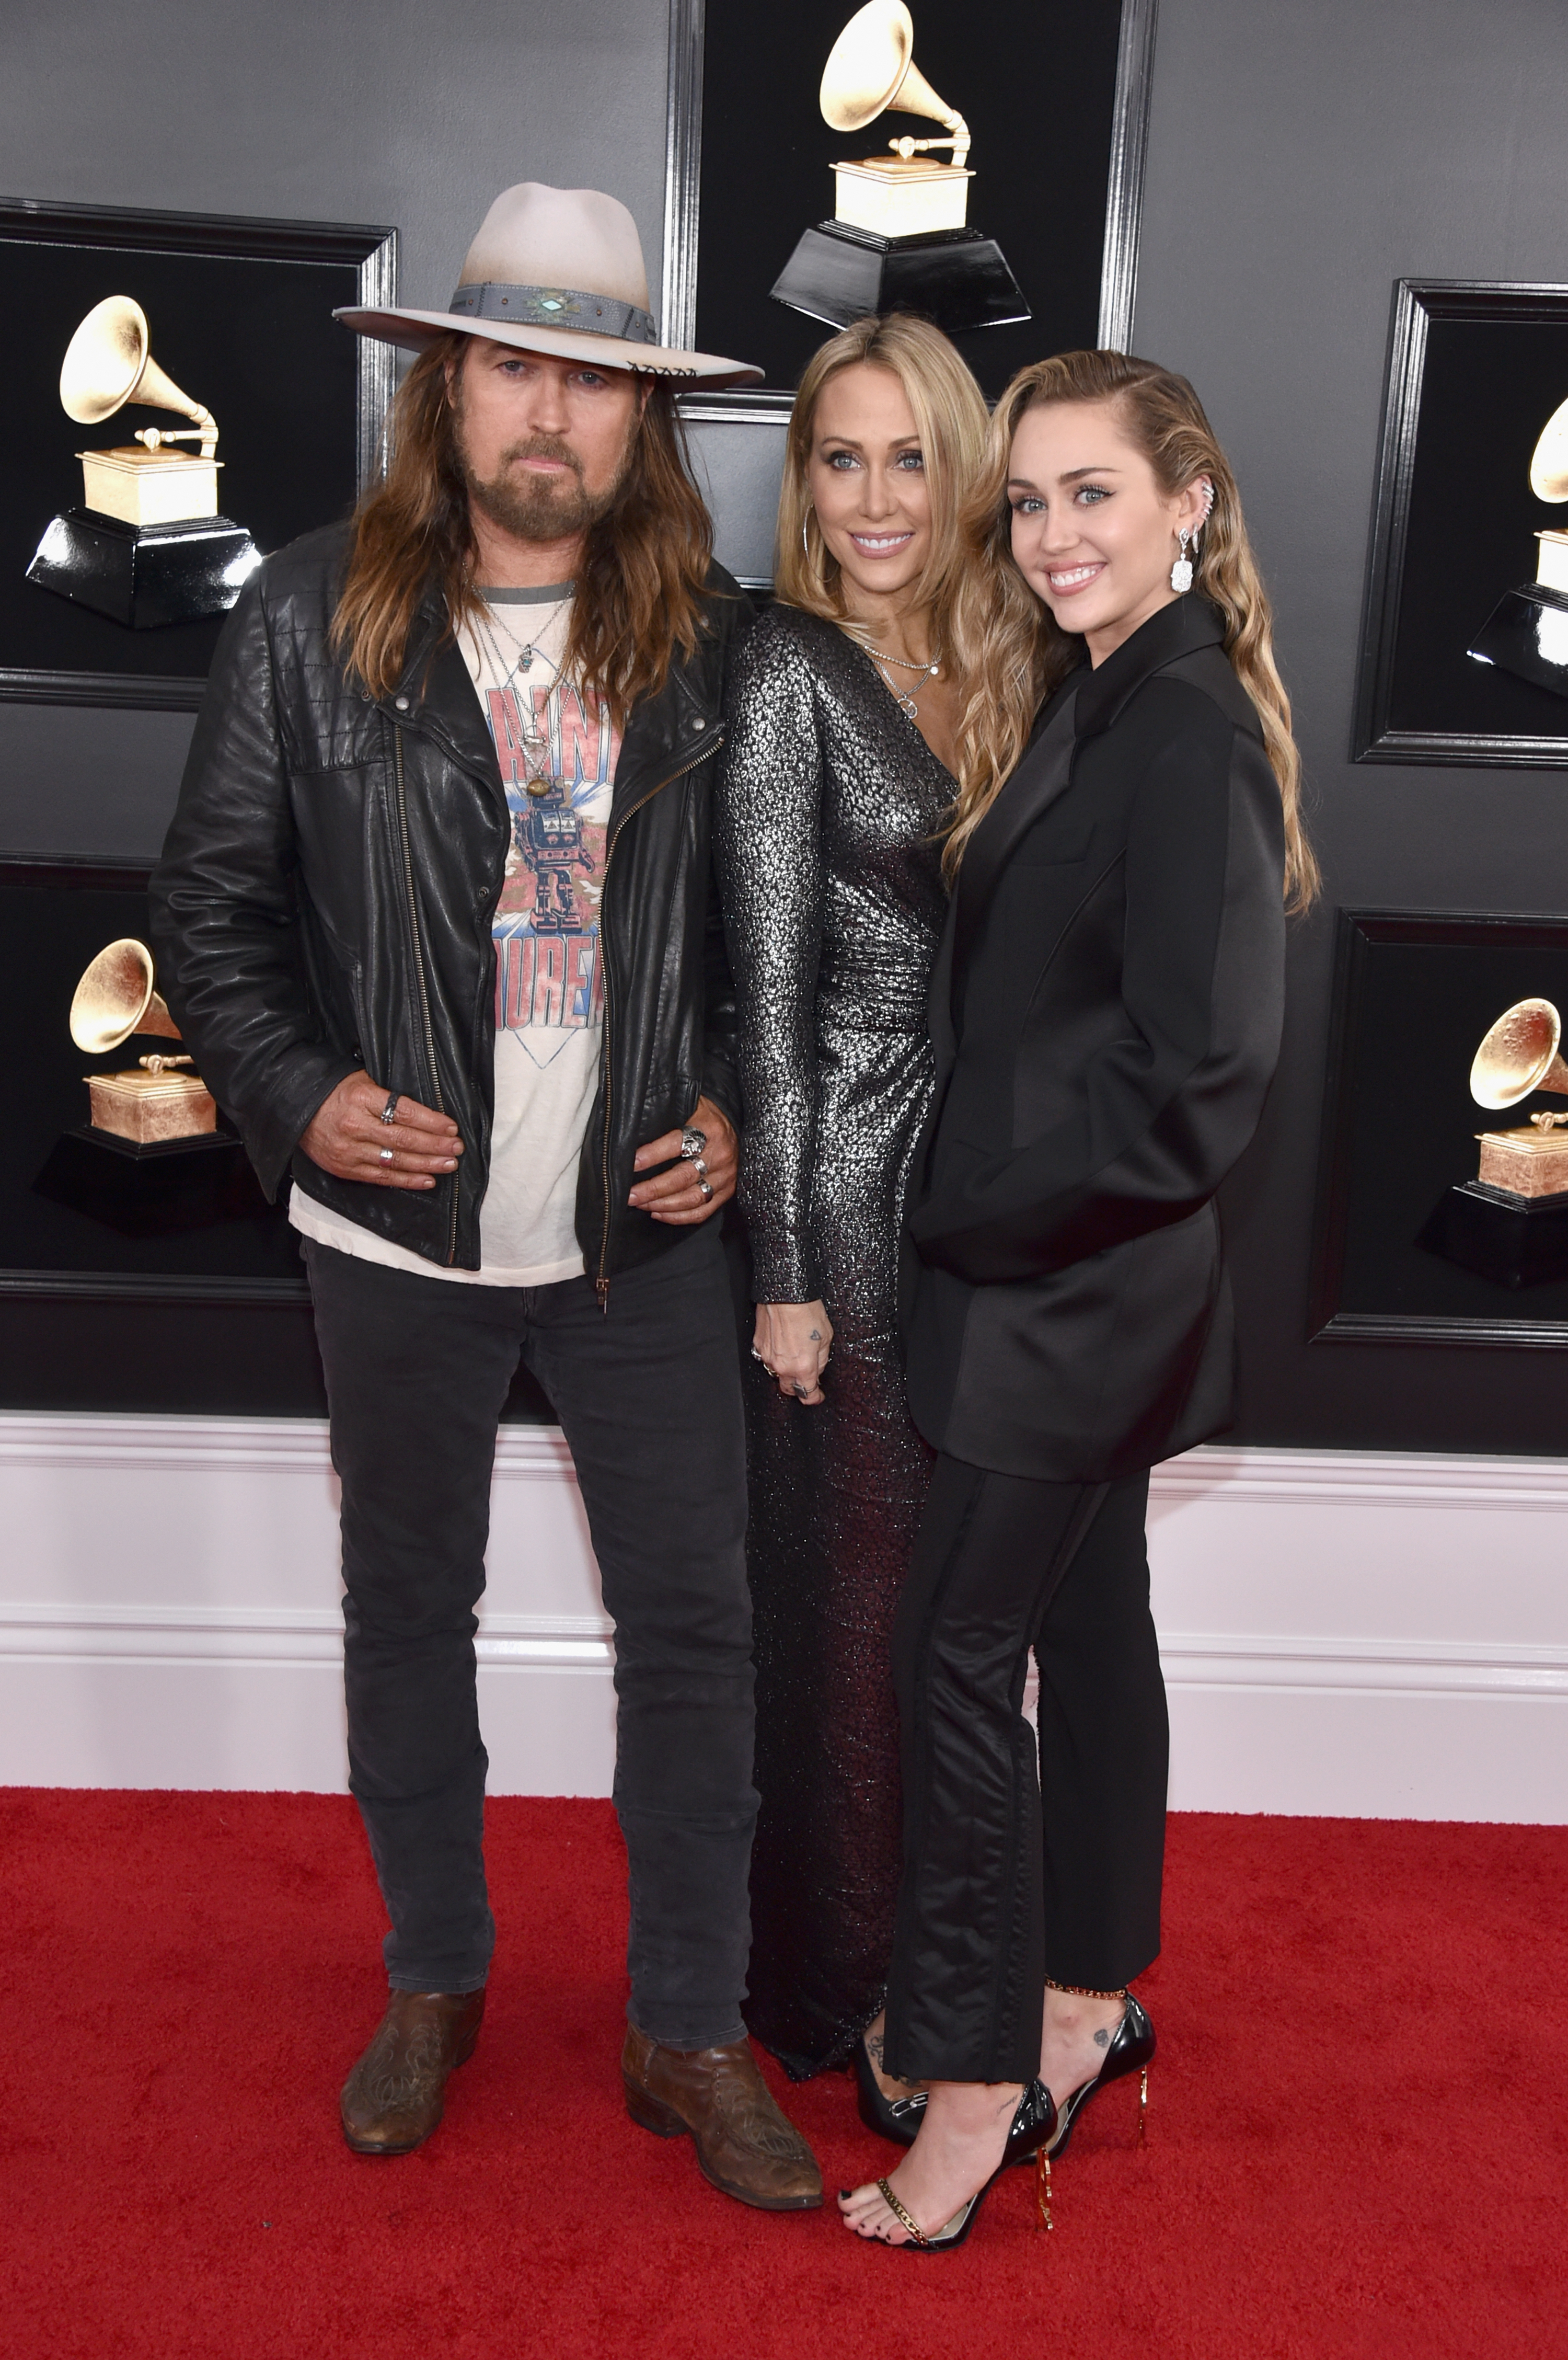 Grammys 2019: Shawn Mendes, Miley Cyrus and More Stars Who Brought Family Members as Dates - The Cyrus family coordinated in all-black at the 2019 Grammys.